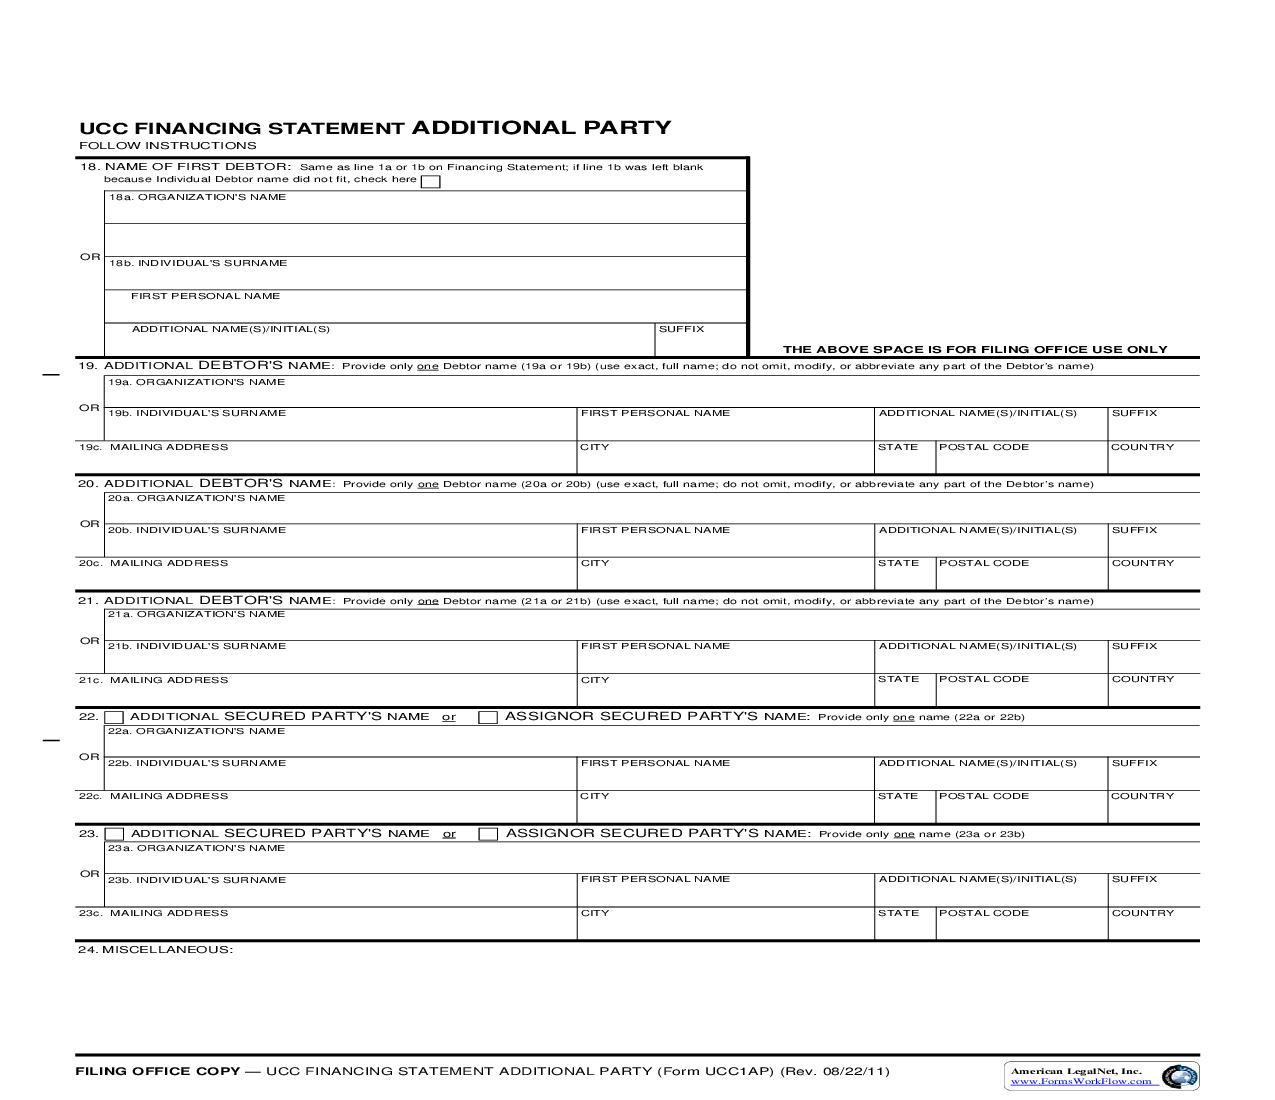 UCC1AP Financing Statement Additional Party {UCC1AP} | Pdf Fpdf Doc Docx | Virginia